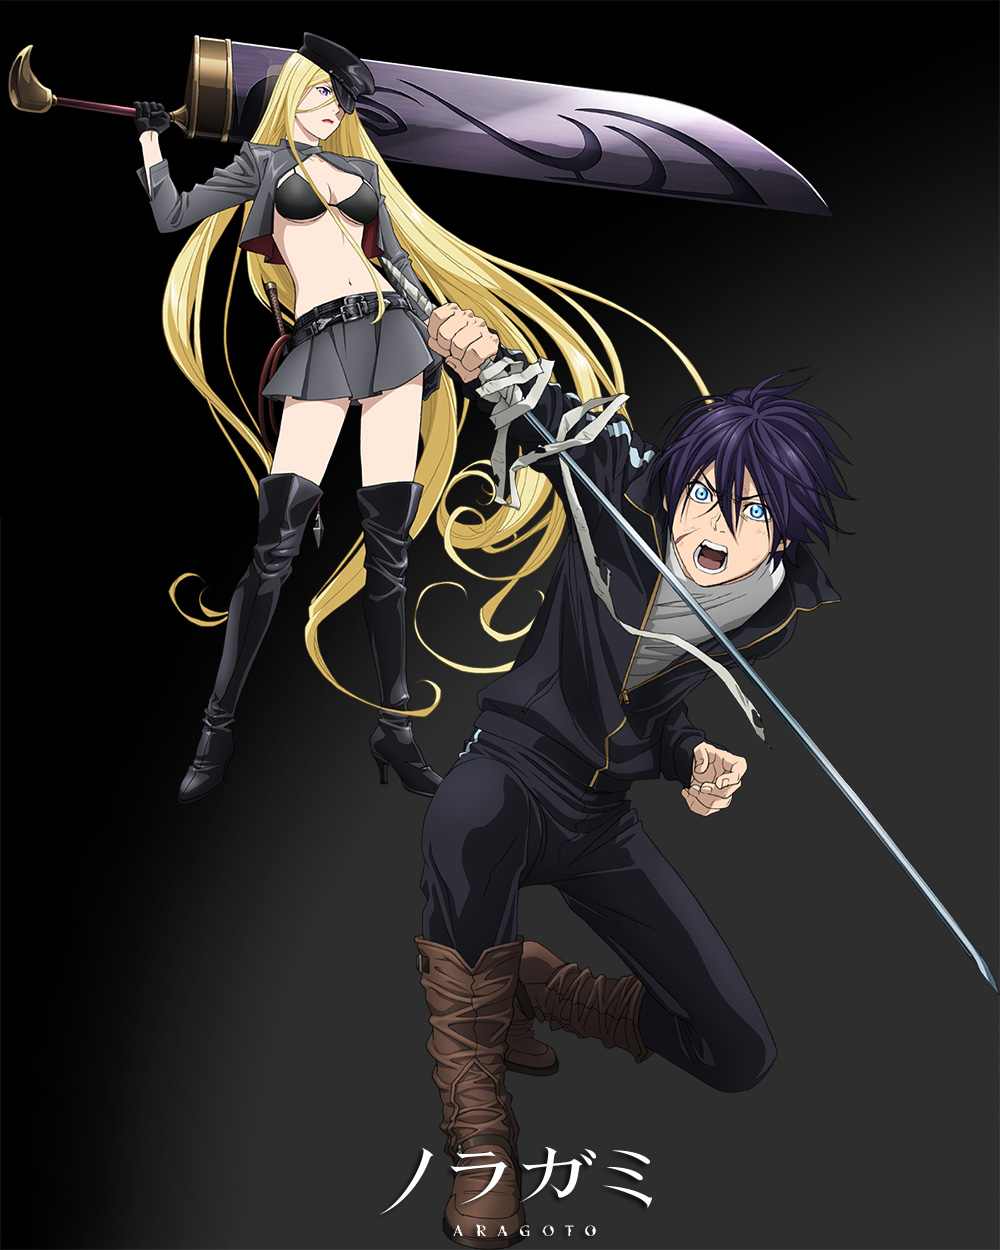 Noragami-Aragot-Visual